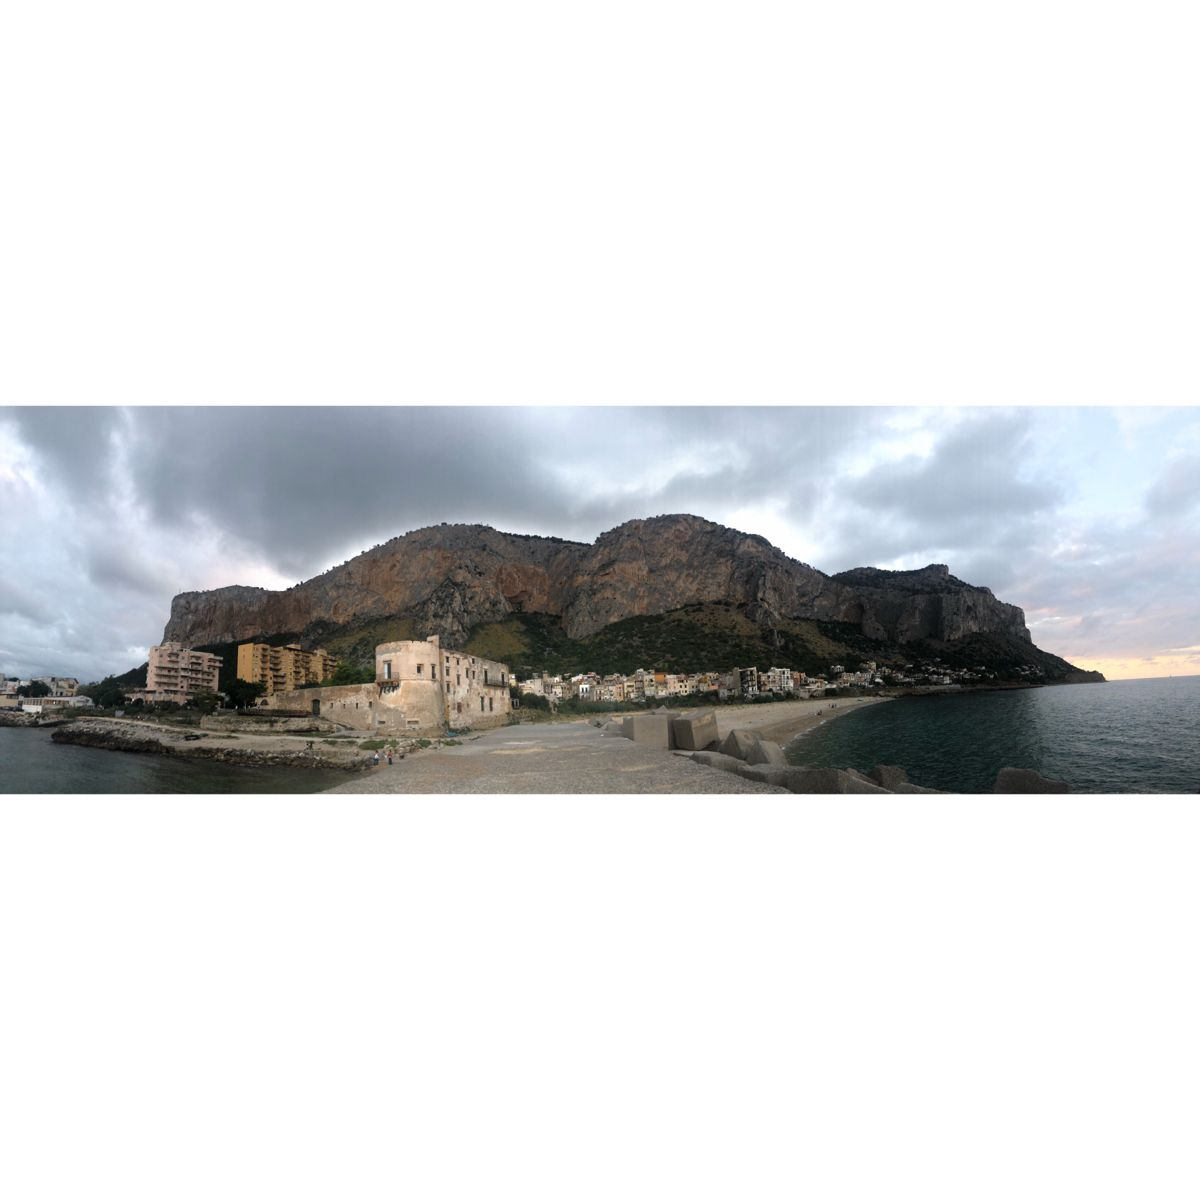 #palermo #sicilia #italy #beach #summer #love #icecream #pasta  #pizza #food #mountains #nature #coastline #water #landscape #piano #music